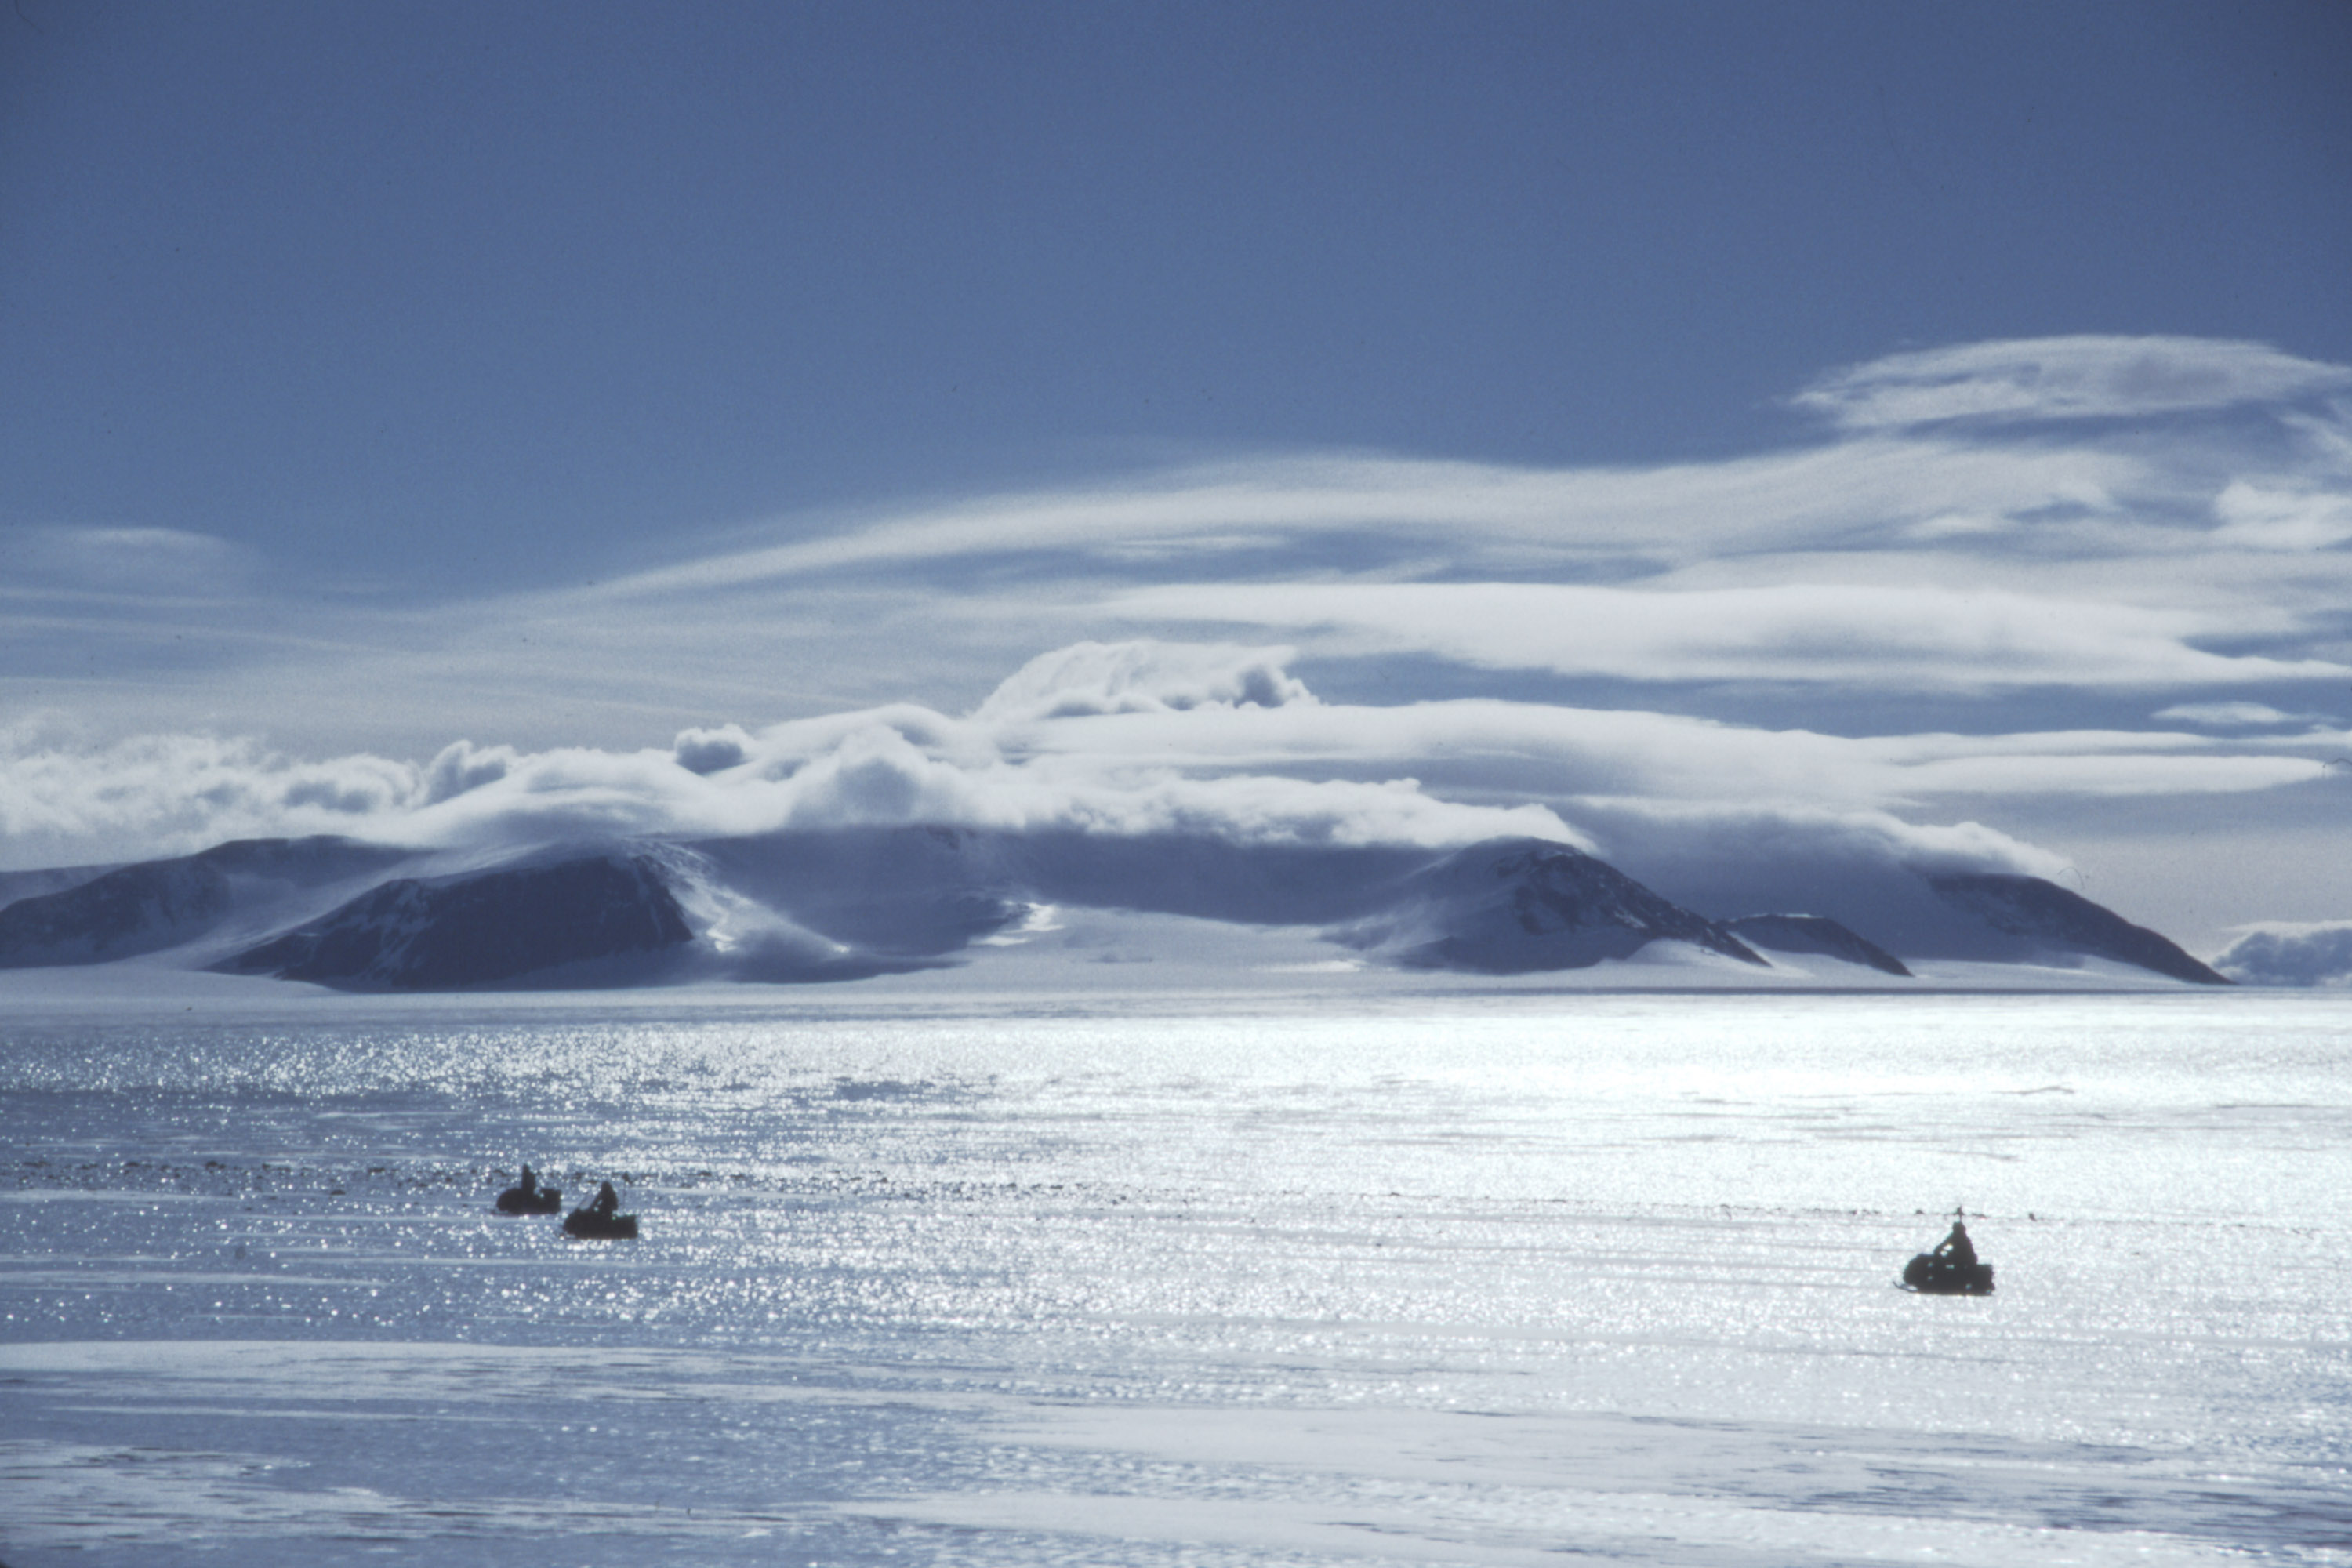 nasa antarctica - photo #36